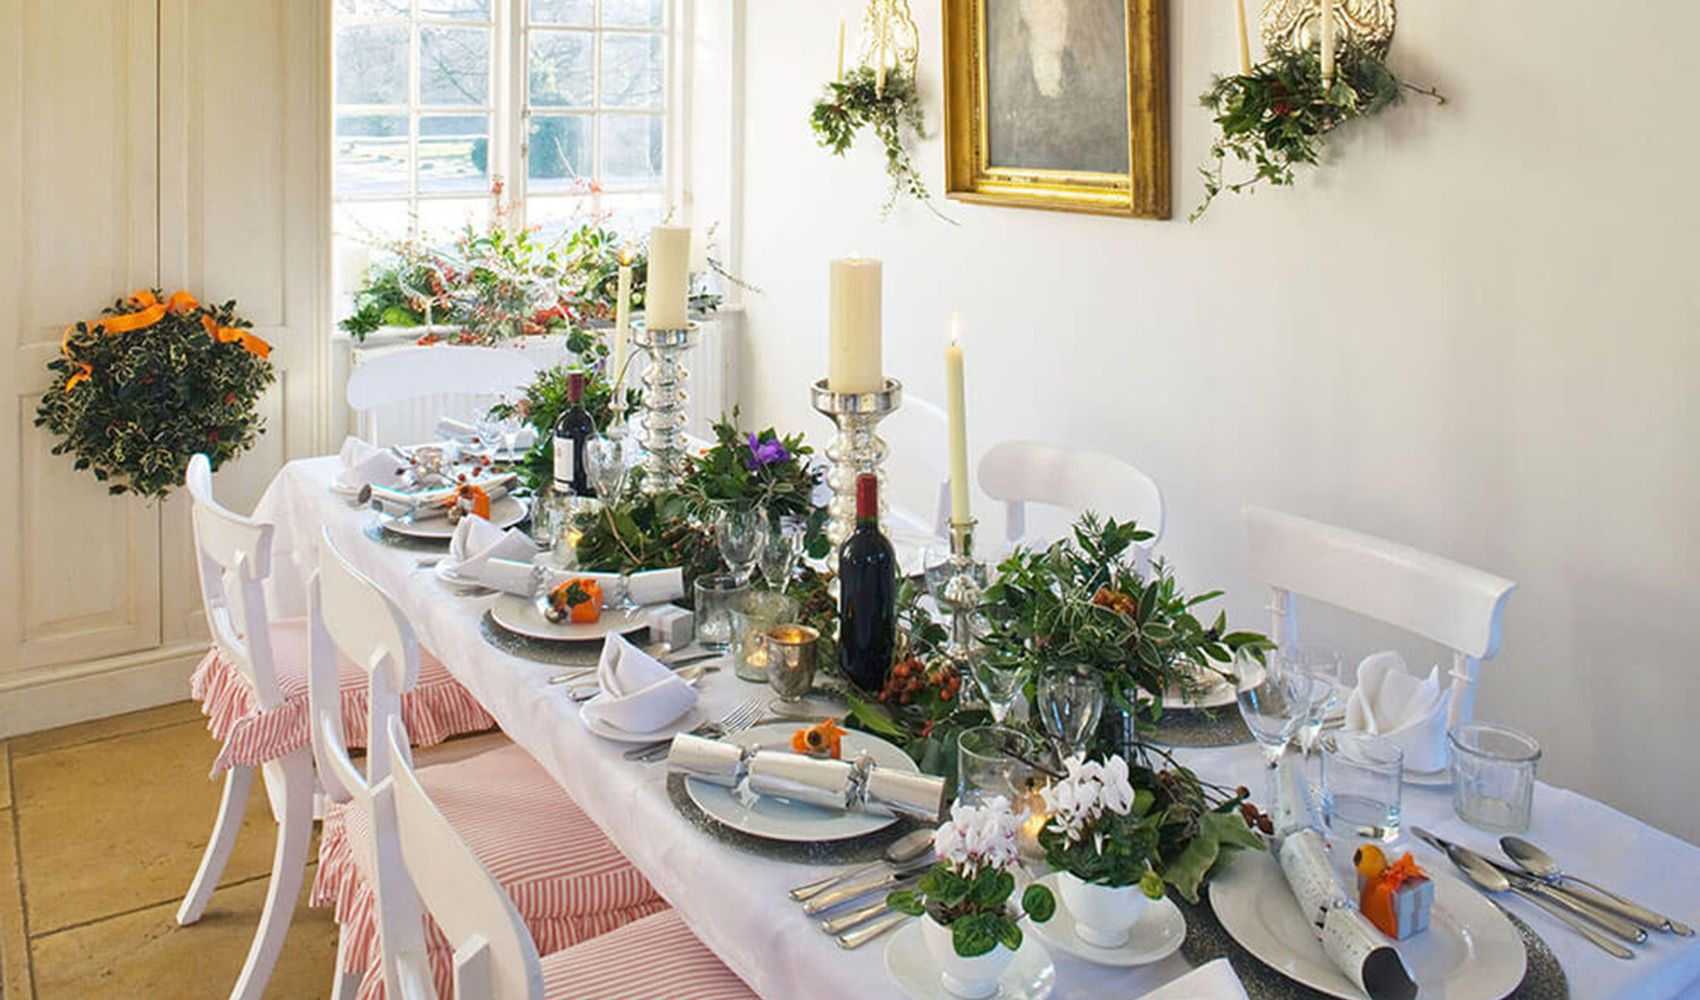 Ground floor: Dining area, dressed for Christmas